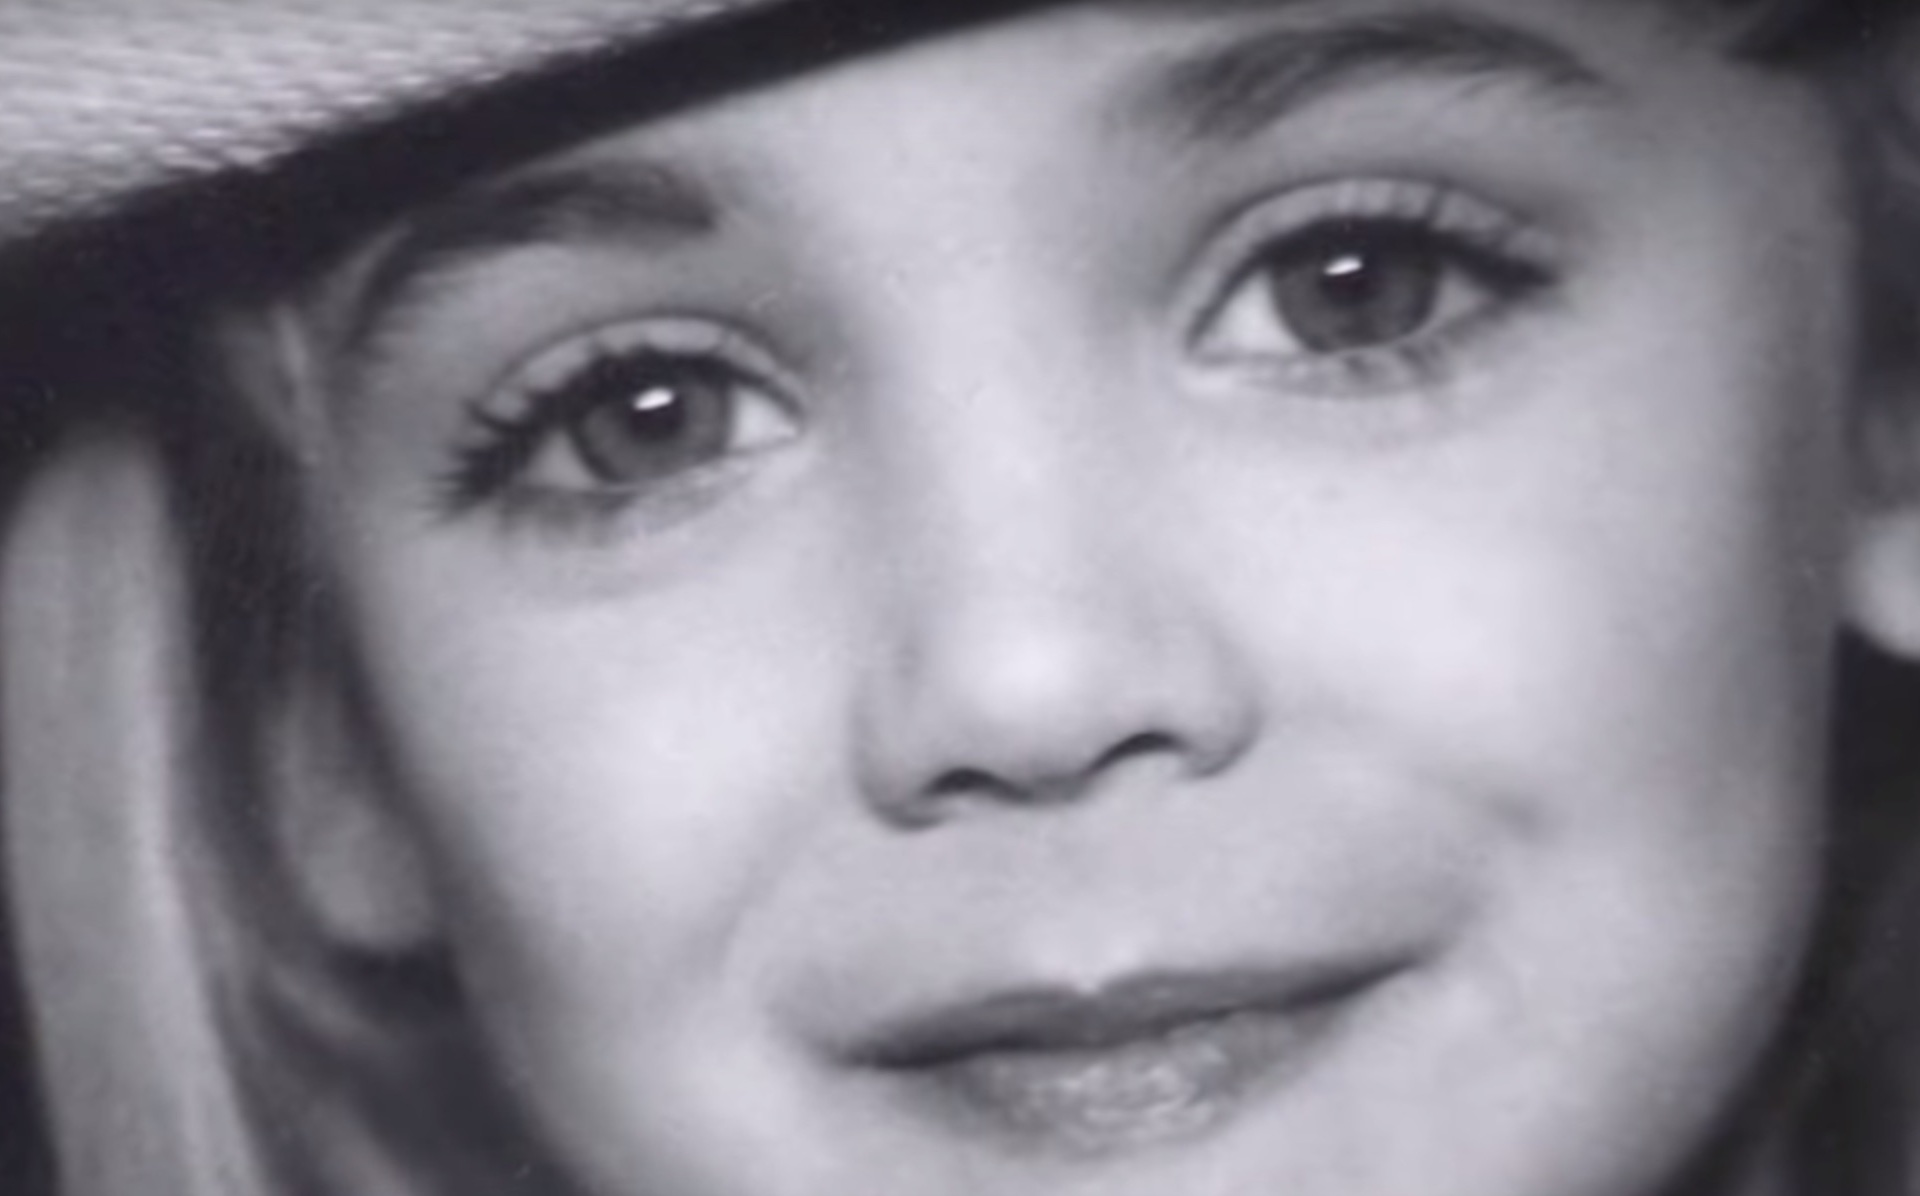 Five Terribly Tragic Things Most People Forget About The JonBenét Ramsey Case